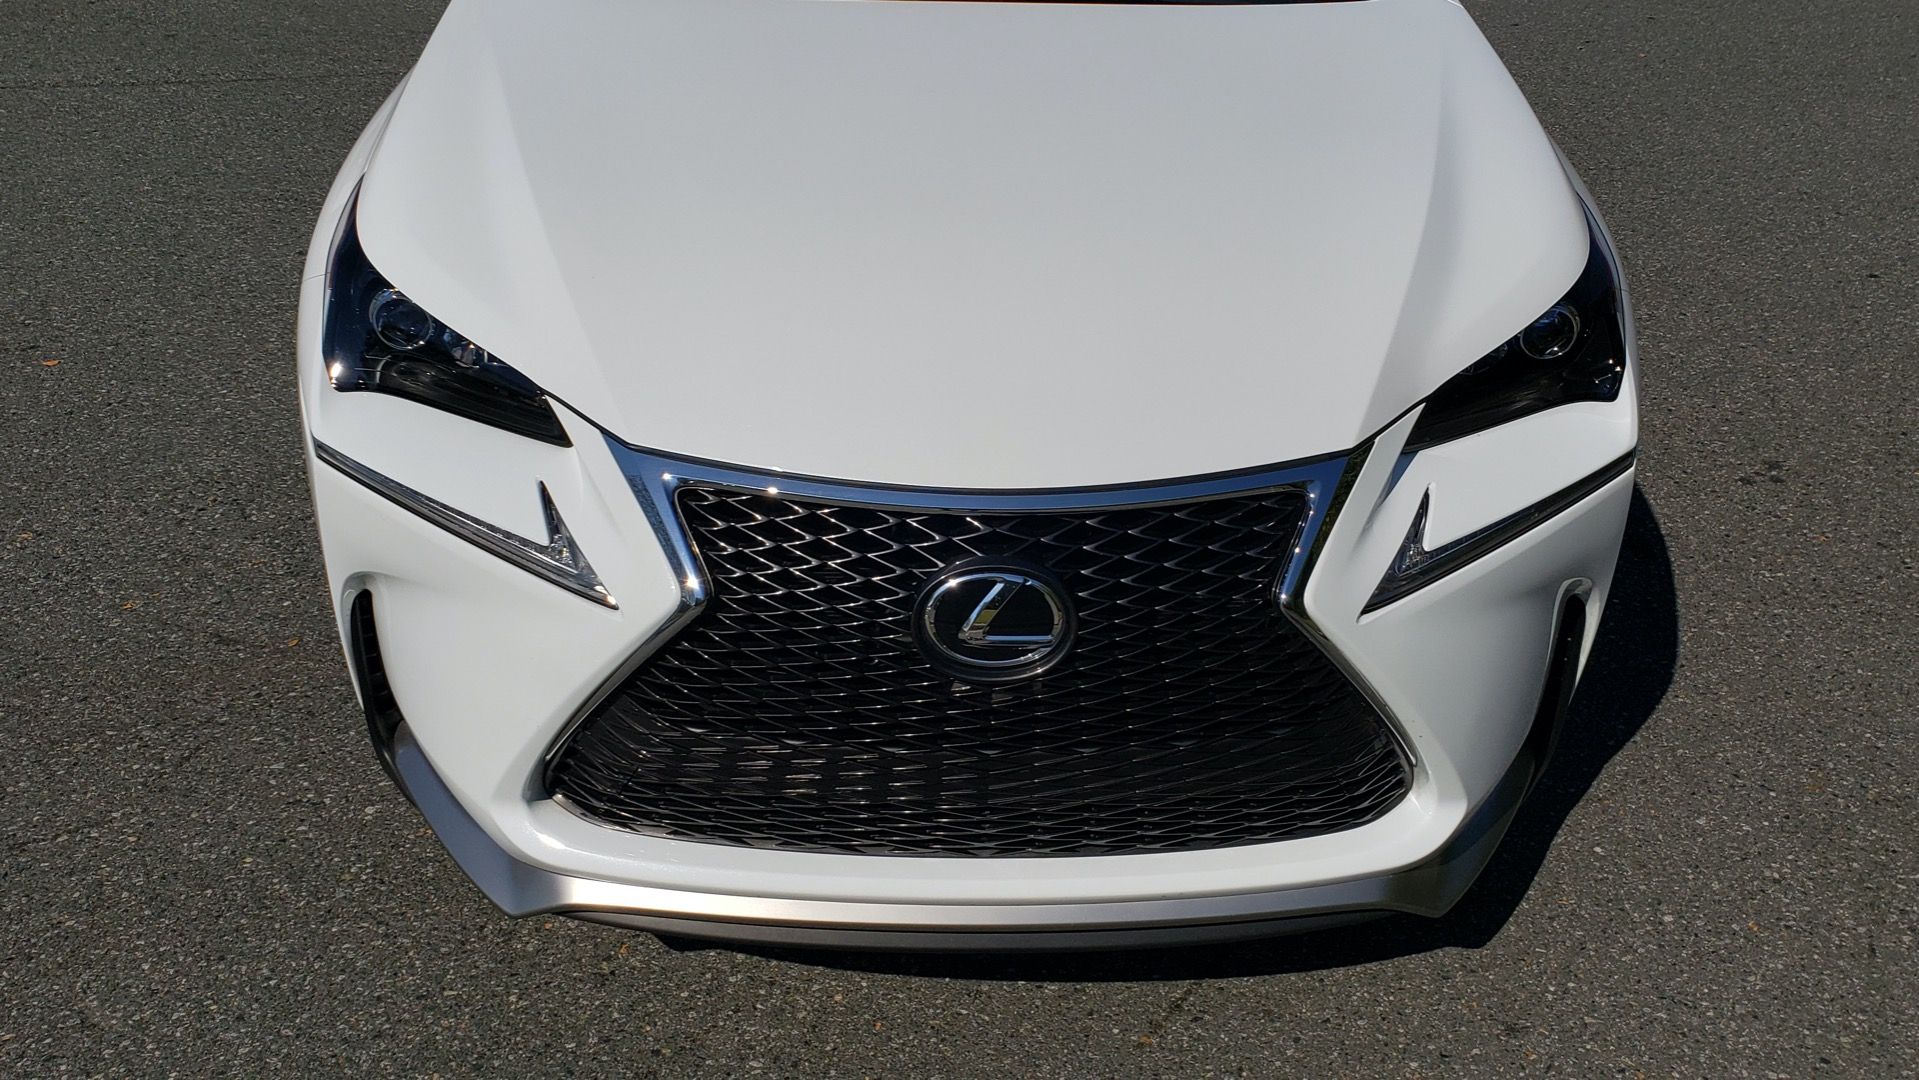 Used 2016 Lexus NX 200t F-SPORT / BACK-UP CAMERA / 18 INCH WHEELS for sale Sold at Formula Imports in Charlotte NC 28227 11